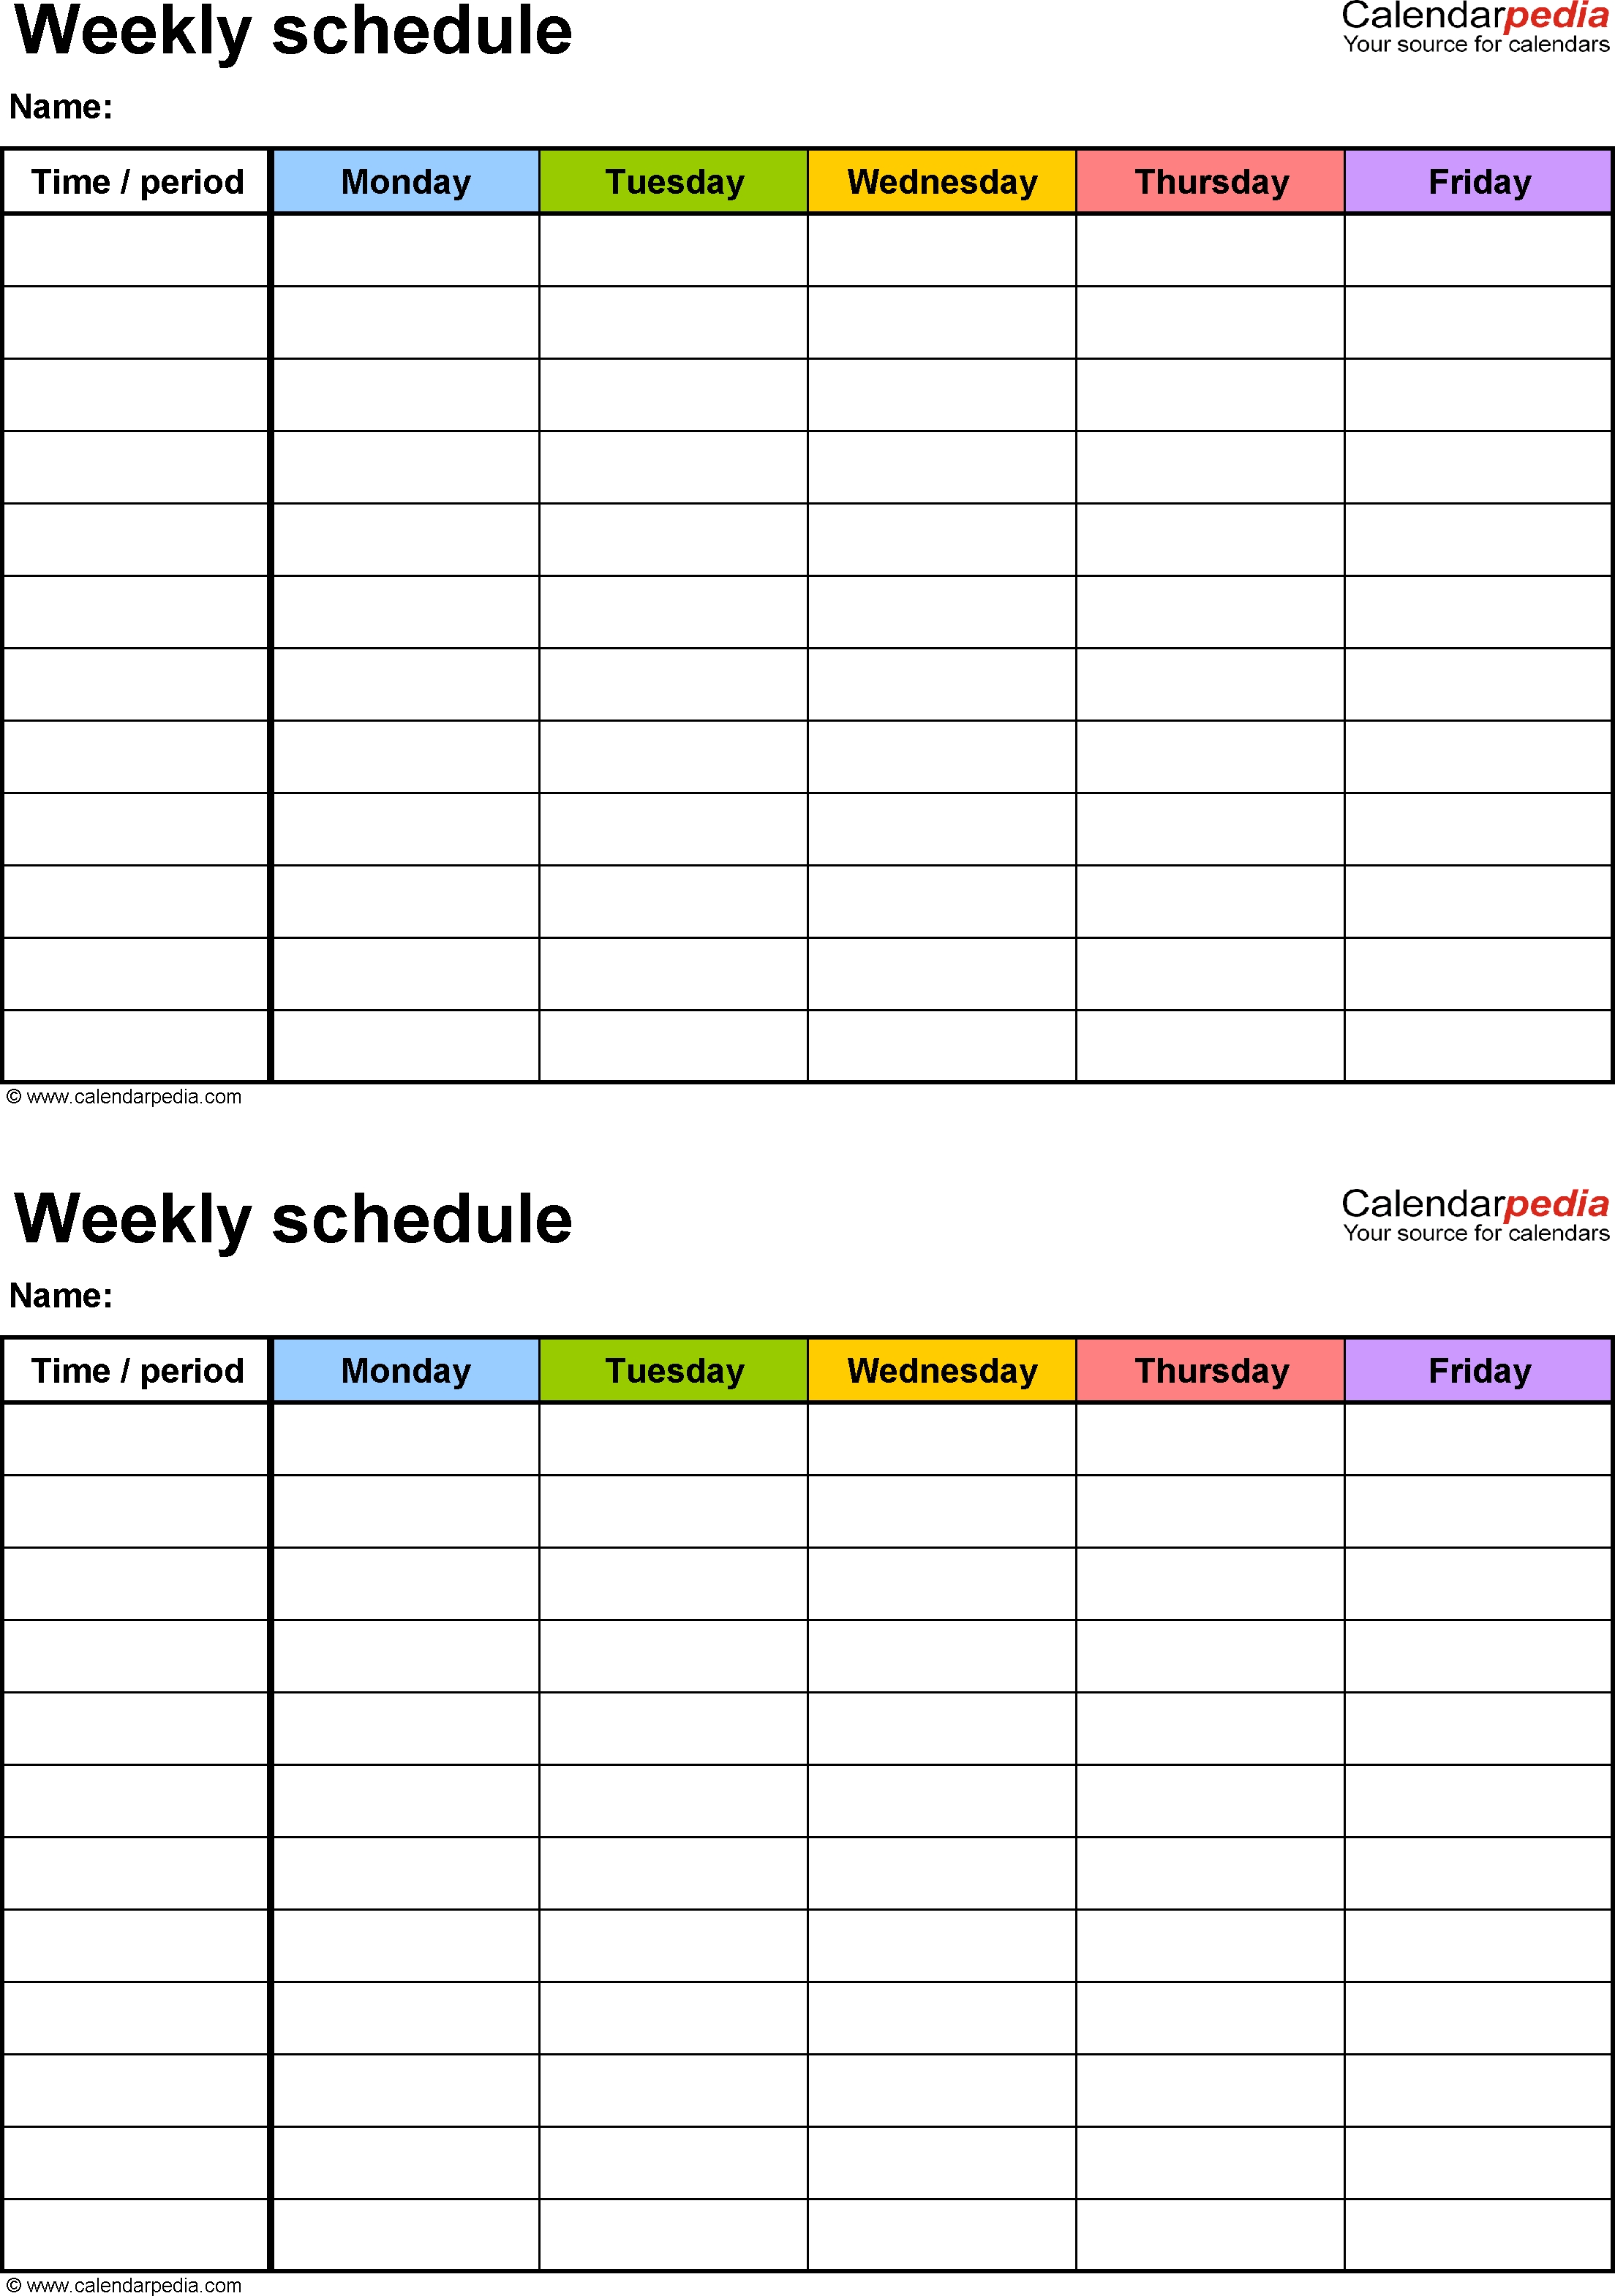 Free Weekly Schedule Templates For Excel - 18 Templates intended for Yearly Schedule Of Events Template